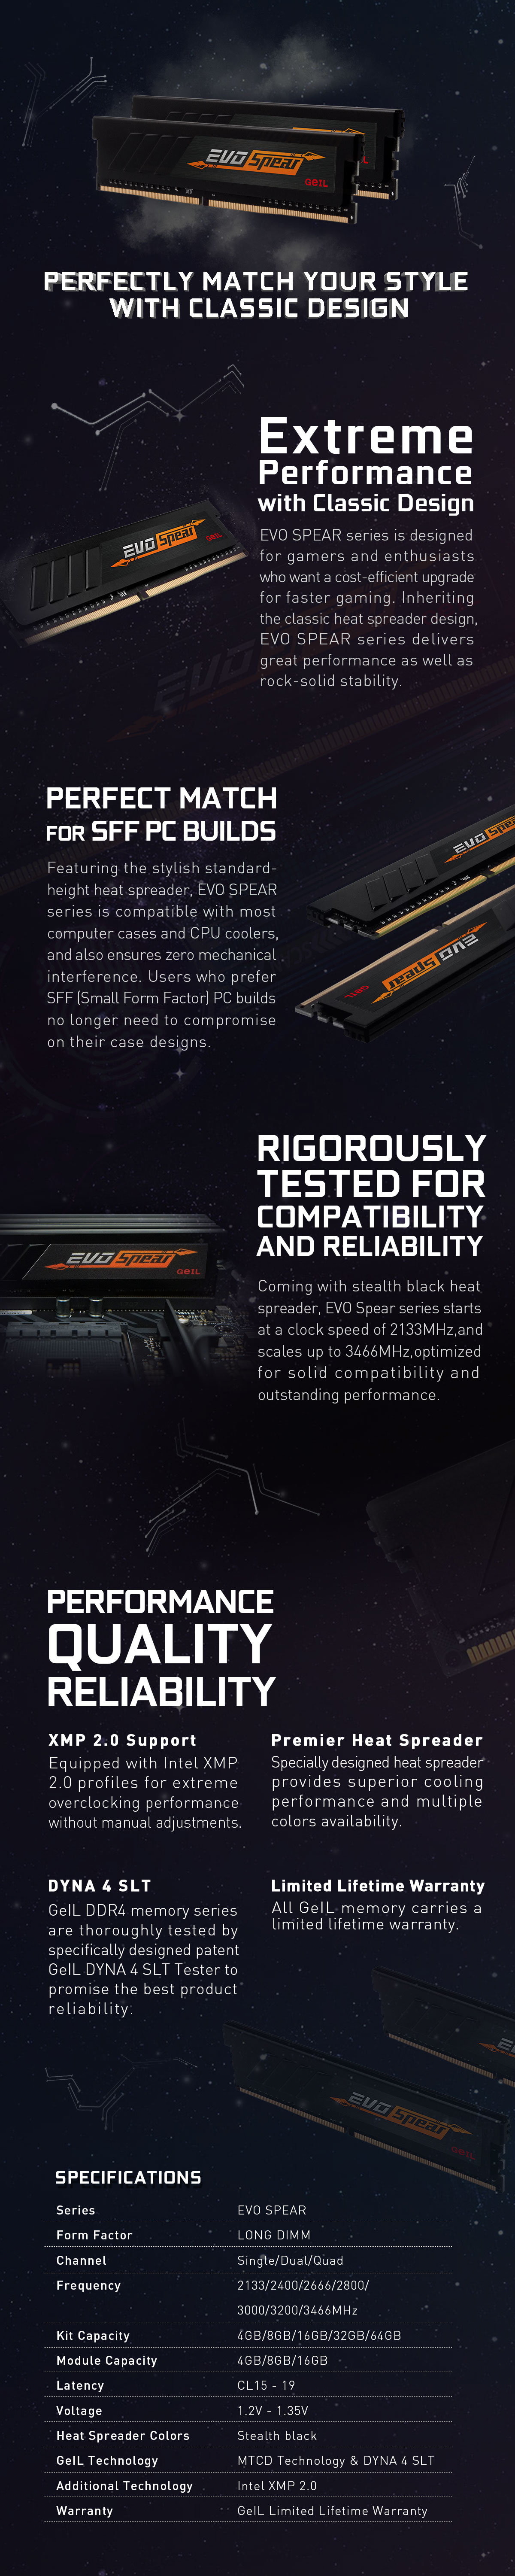 A large marketing image providing additional information about the product GeIL 16GB Kit (2x8GB) DDR4 EVO SPEAR C16 2400MHz - Additional alt info not provided